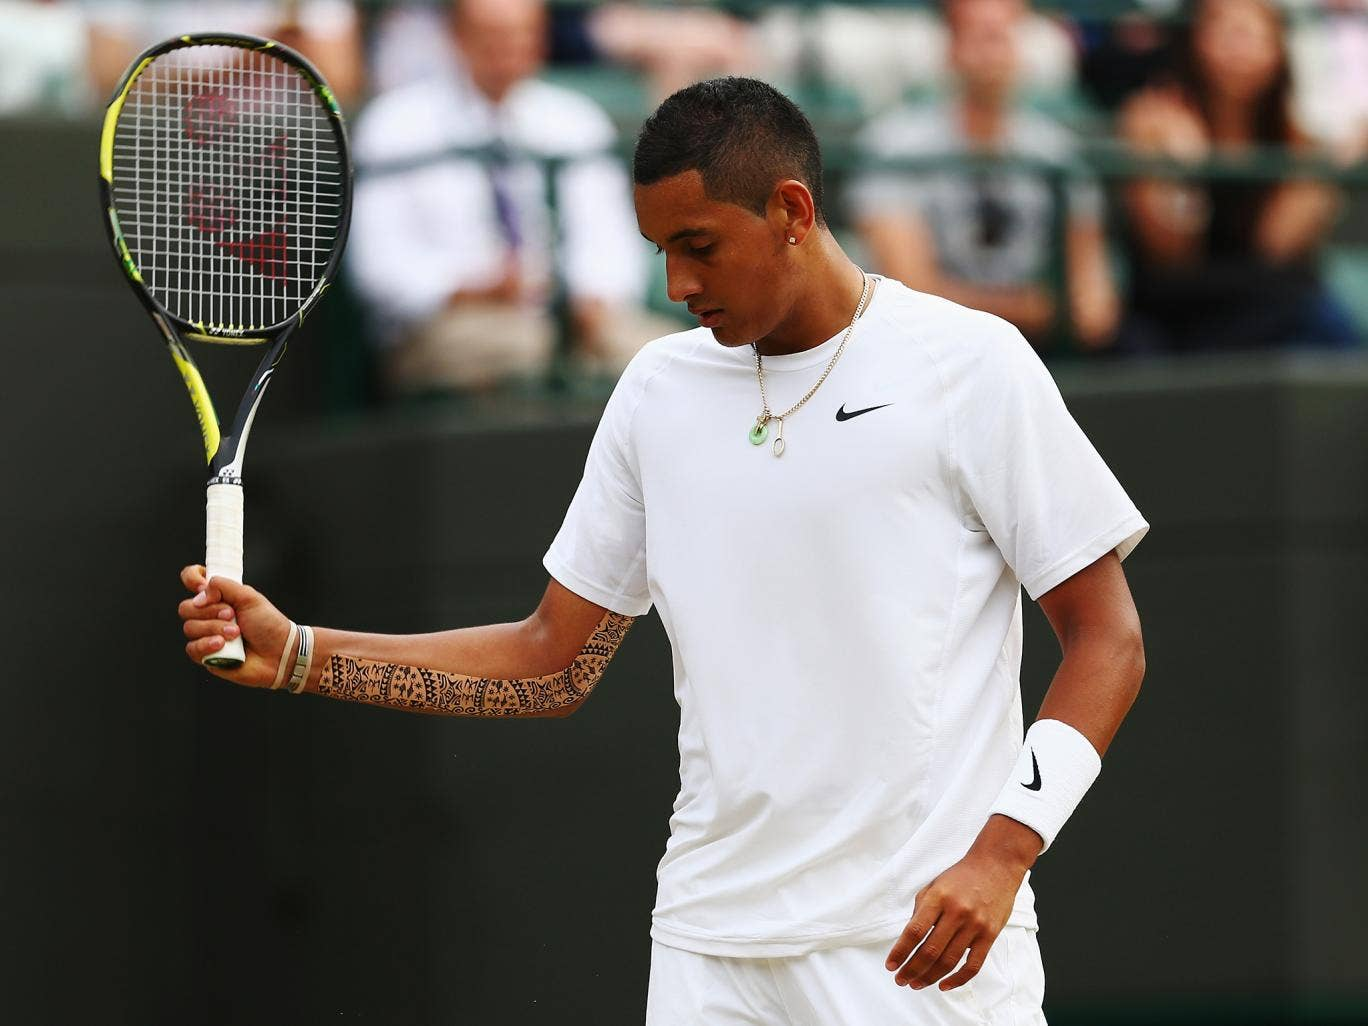 Nick Kyrgios shows his frustration during his Gentlemen's Singles quarter-final match defeat to Milos Raonic